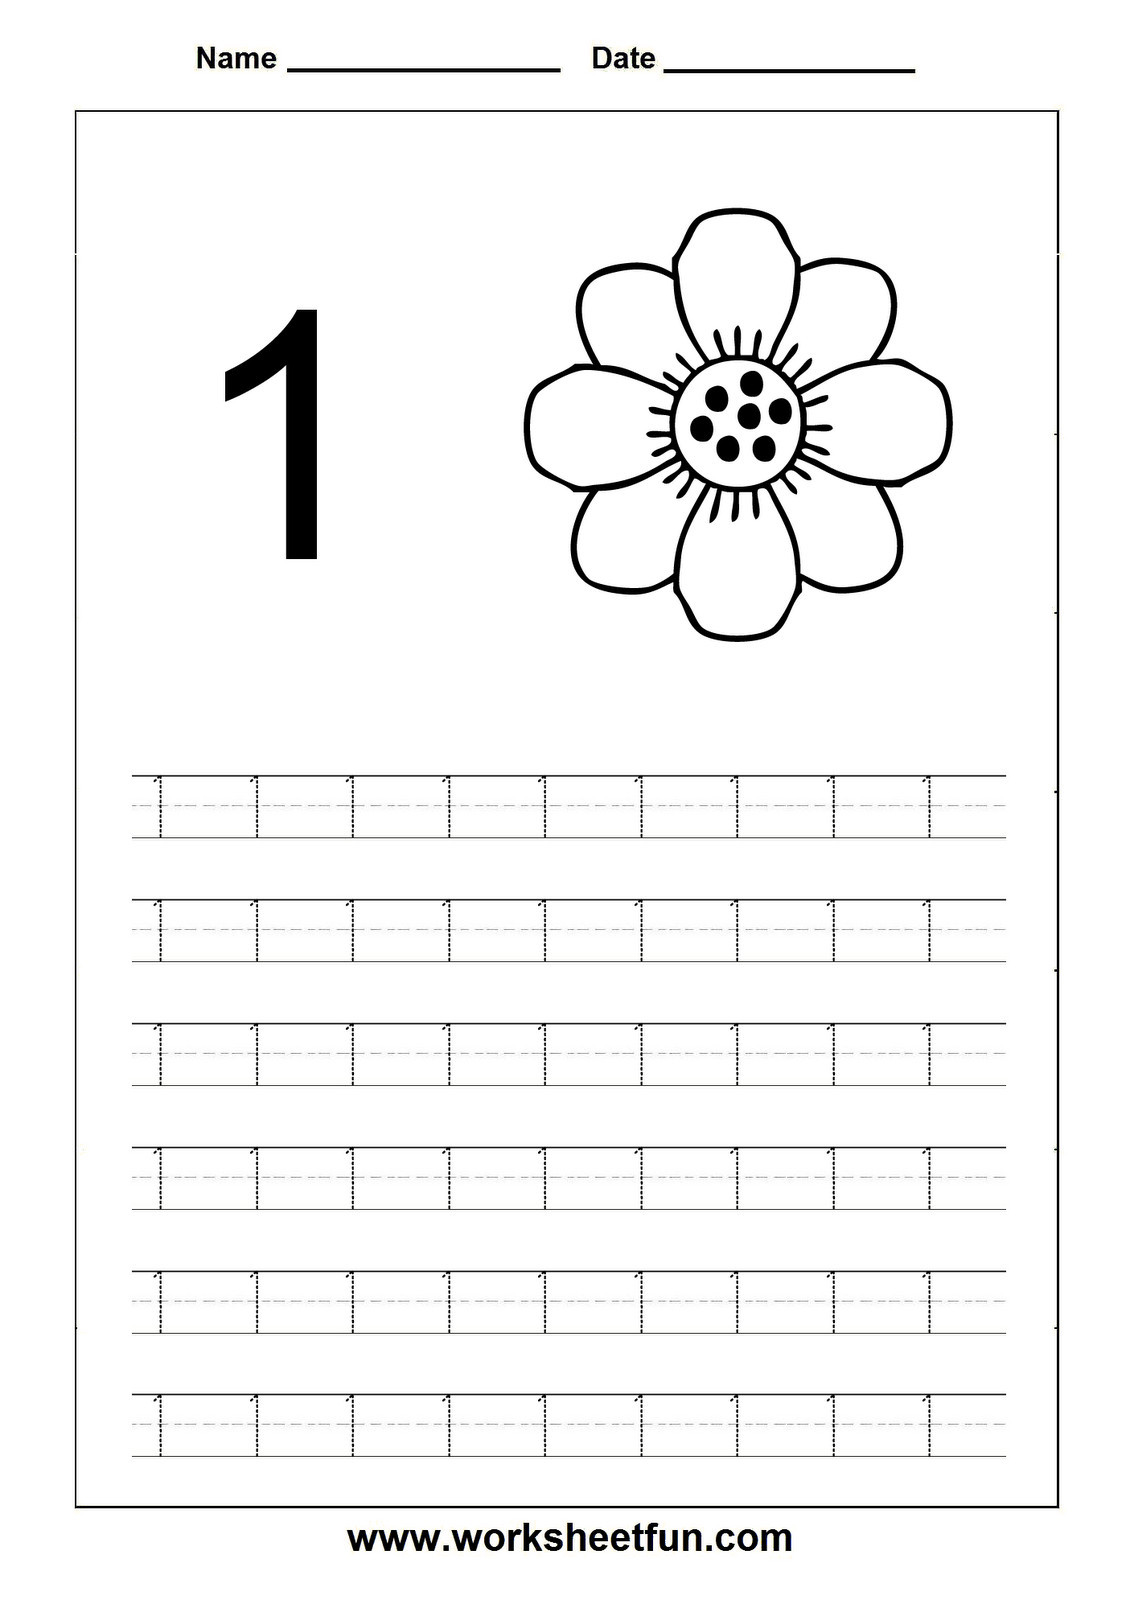 Free Printable Number Tracing Worksheets 5 Worksheet 1 20 Number Tracing Sheet Worksheets Schools